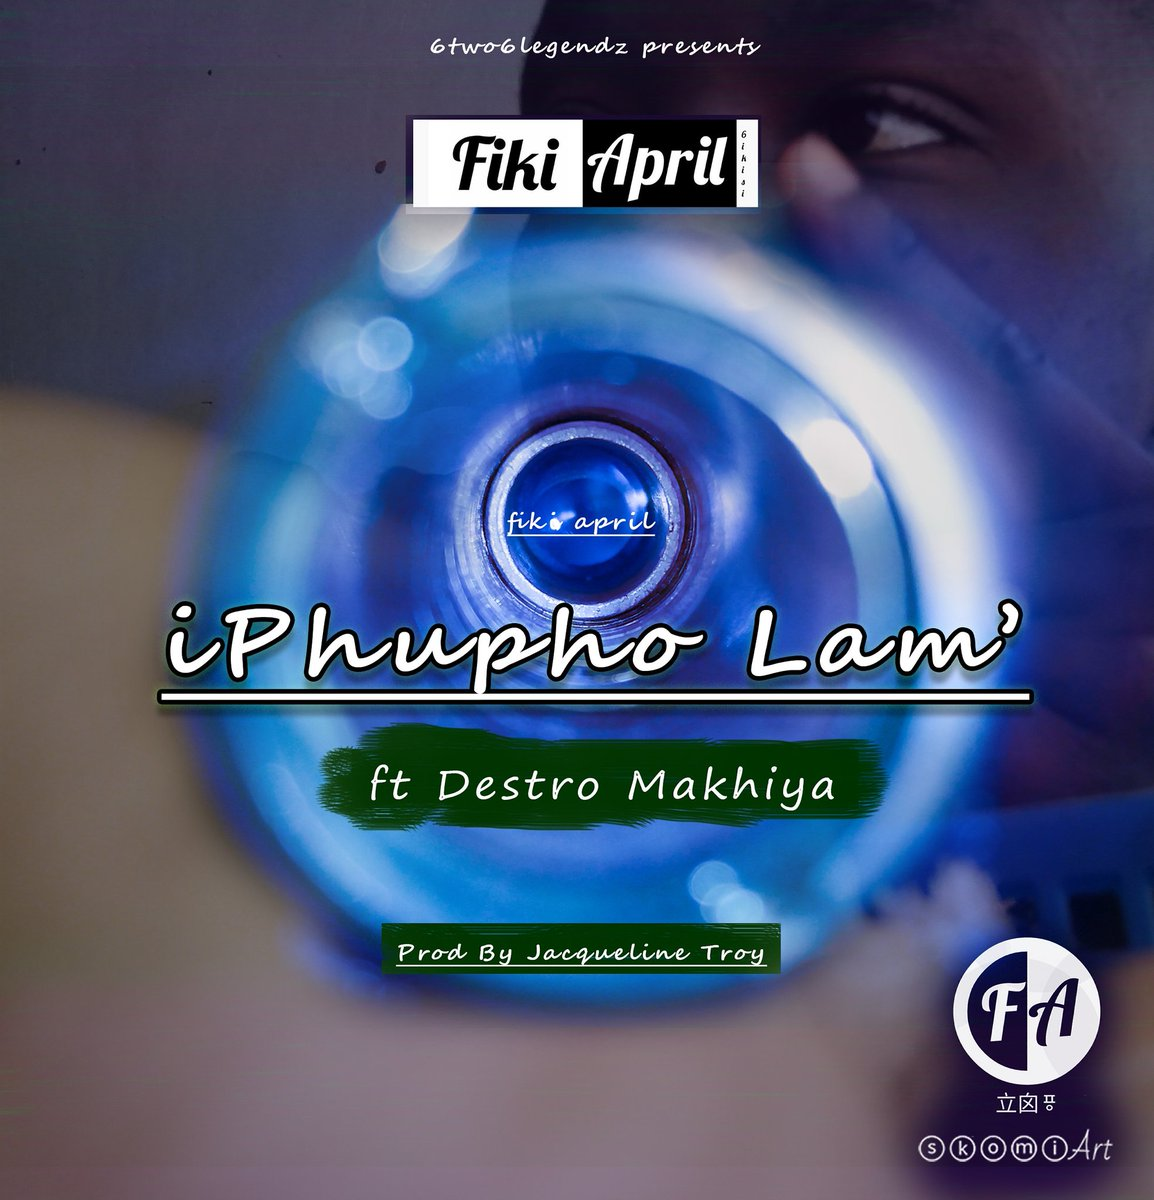 Download And Listen to the Song♬♩♪ Don't Forget to Share Fiki April - iPhupho Lam' ft Destro Makhiya  D/L >>https://t.co/7OpVteej60 #SRL🐺 https://t.co/IxU5o8X8EU